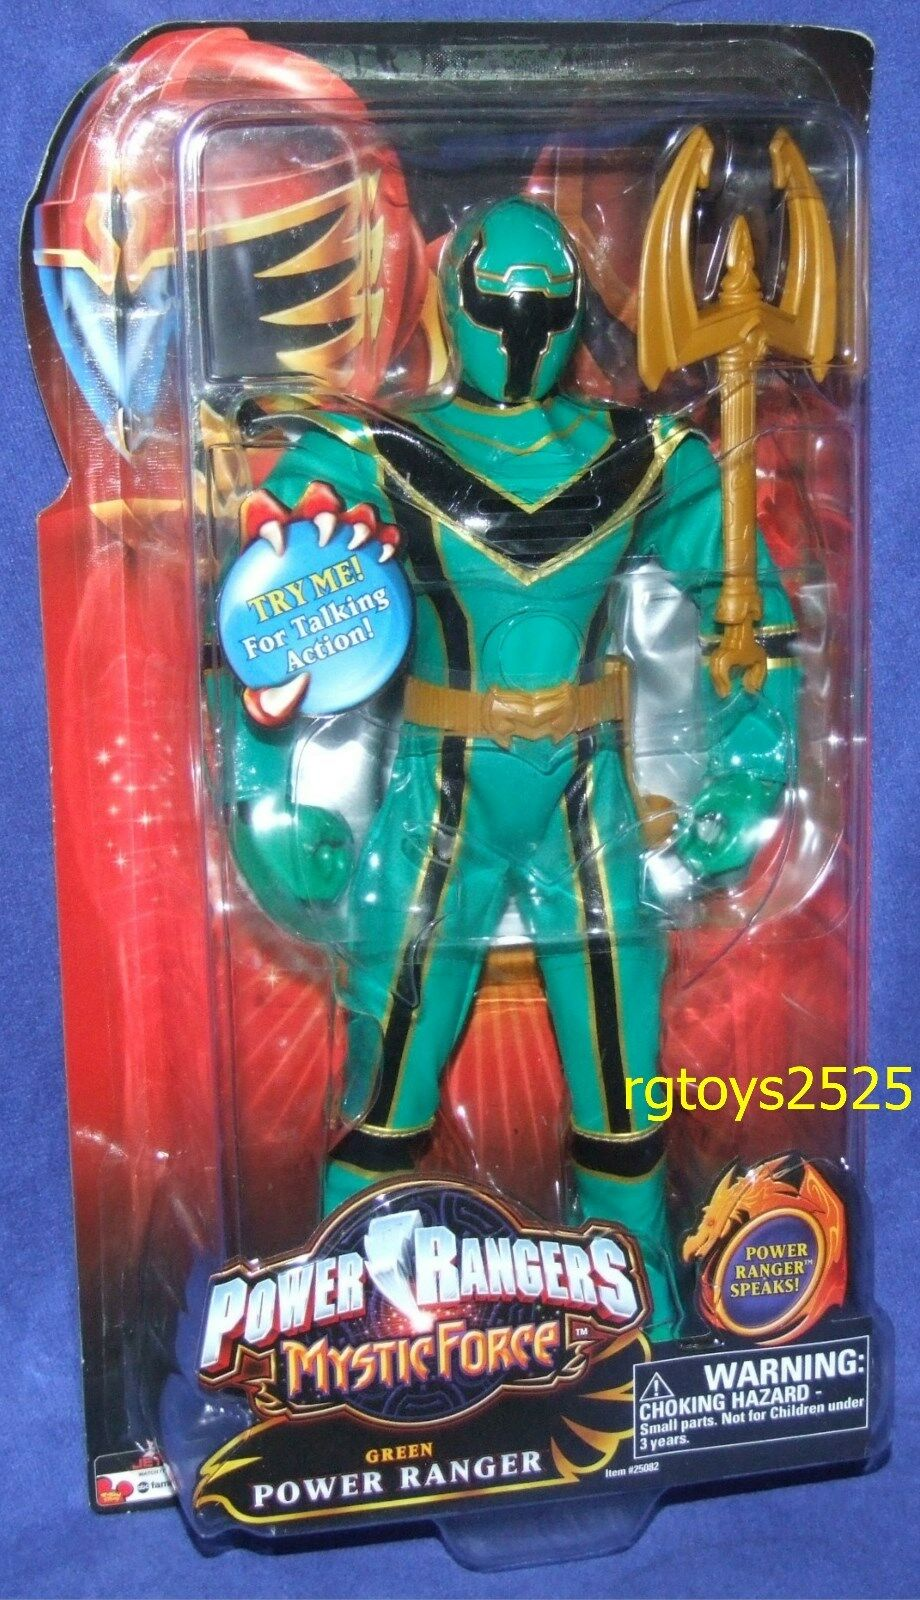 Energia Rangers Mystic  Force verde 12  Ranger  nuovo Talre Factory Sealed 2006  si affrettò a vedere